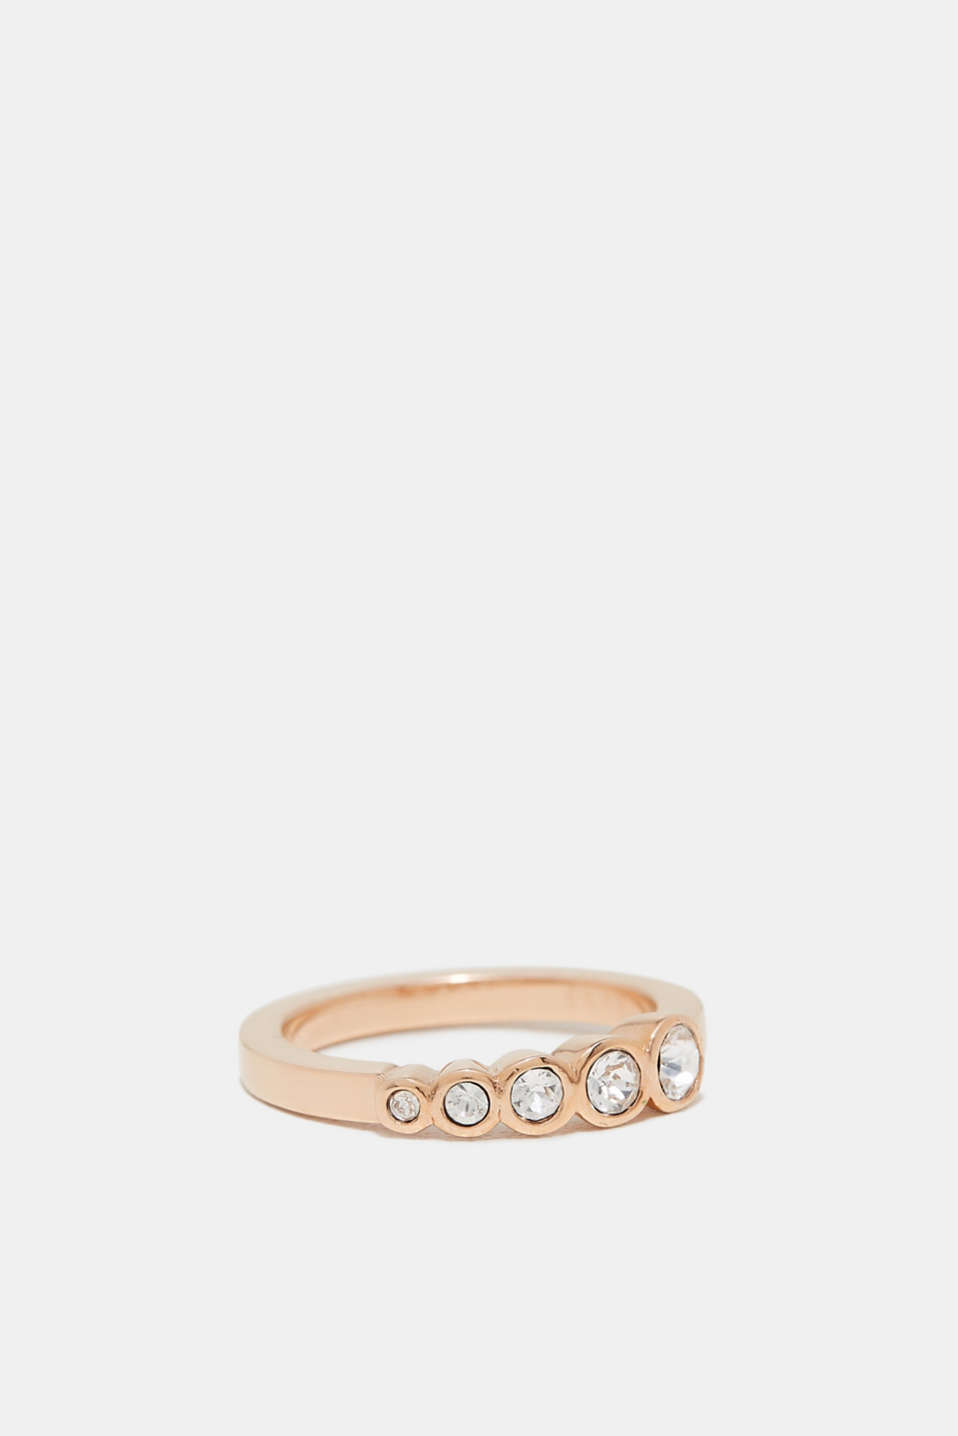 Rose gold ring with decorative zirconia